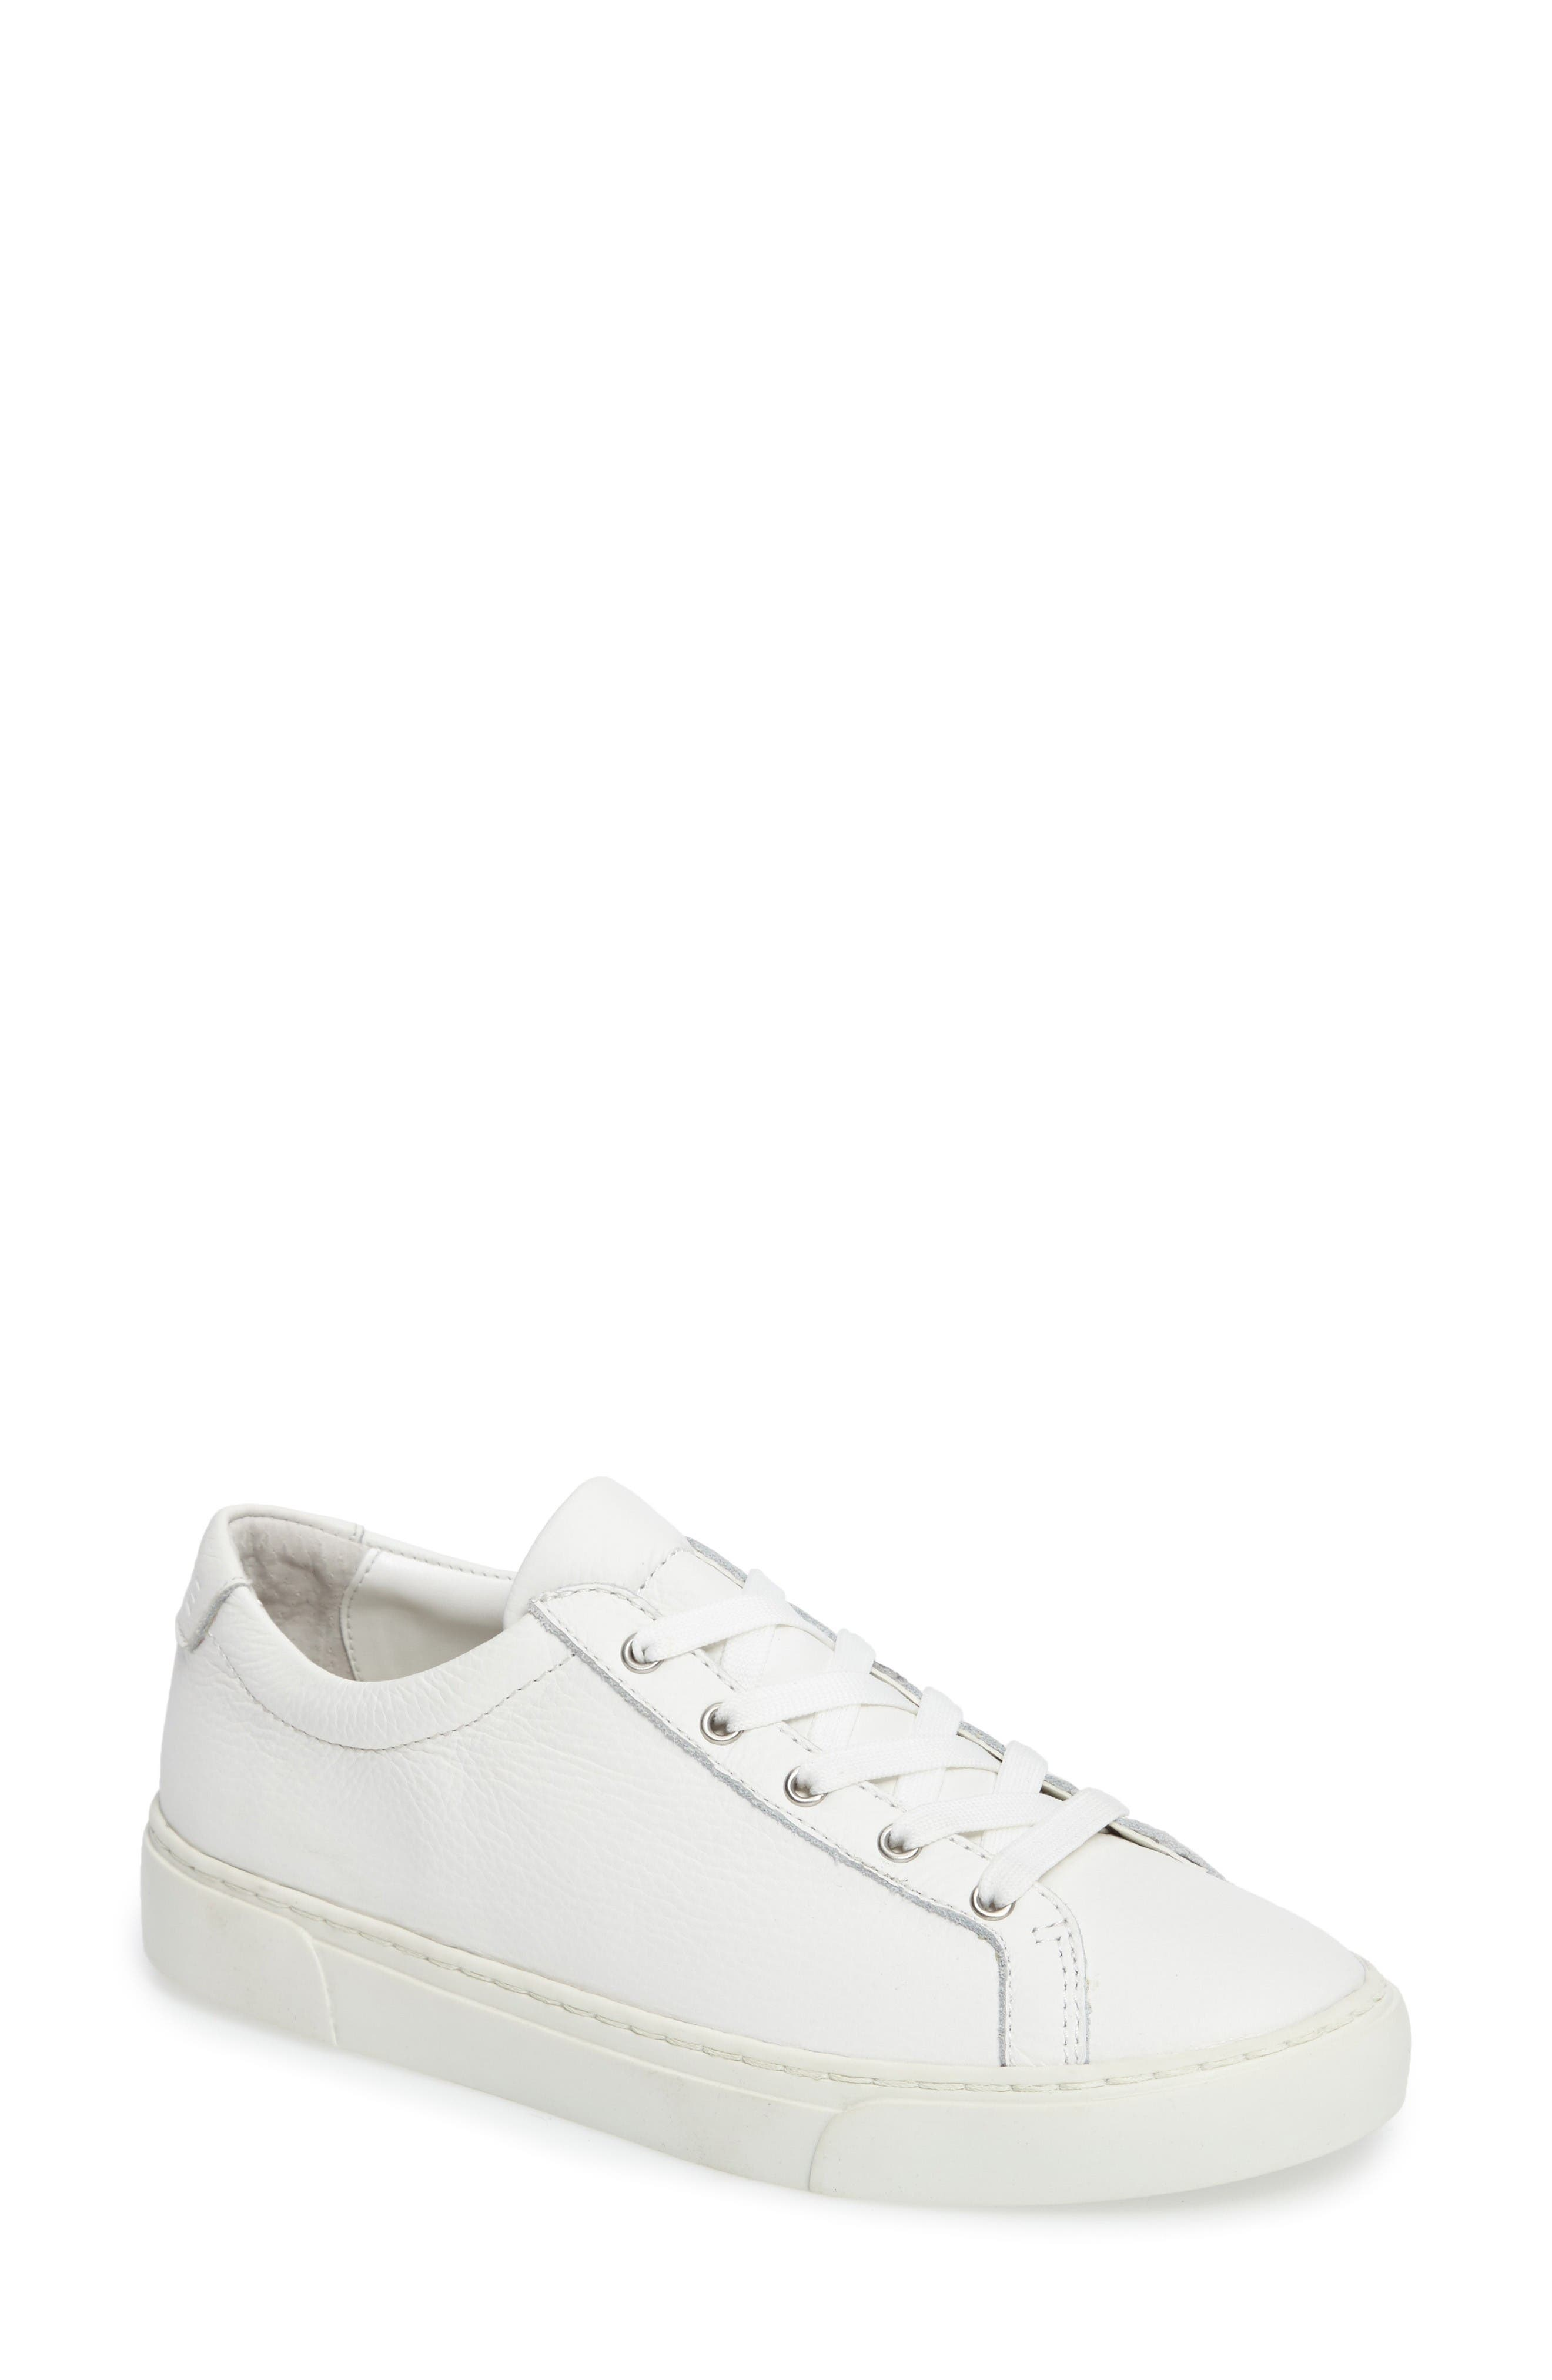 Main Image - 1.STATE Darrion Sneaker (Women)